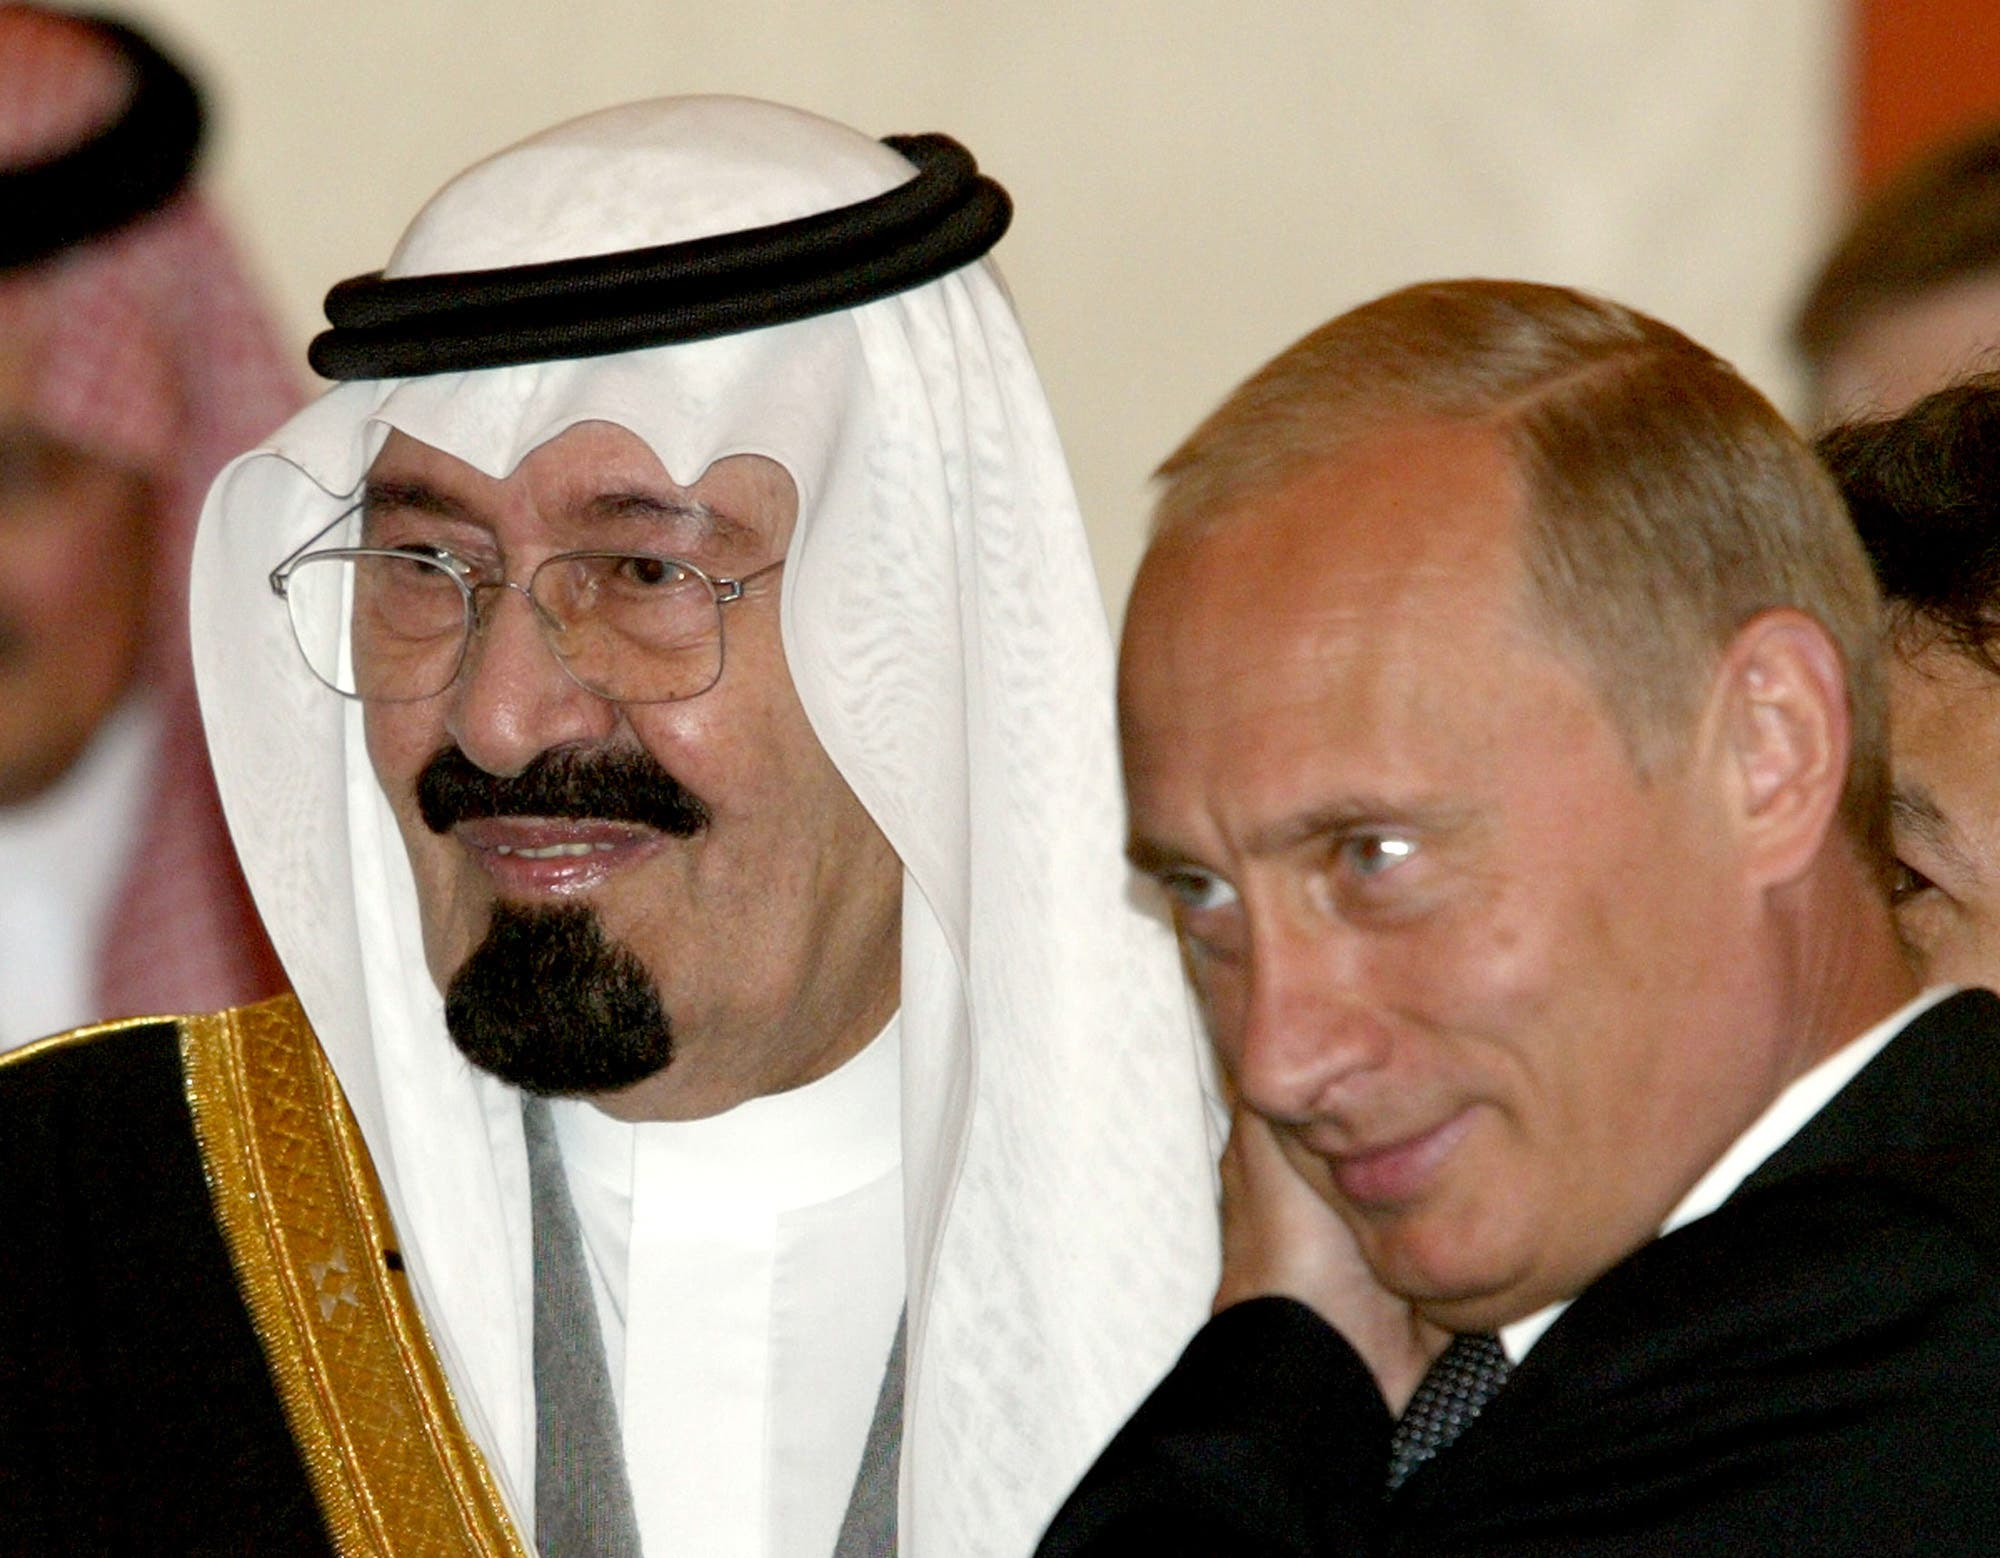 Saudi Arabia's Crown Prince Abdullah, left, and Russian President Vladimir Putin are seen during a meeting at the Kremlin in Moscow, Tuesday, Sept. 2, 2003.